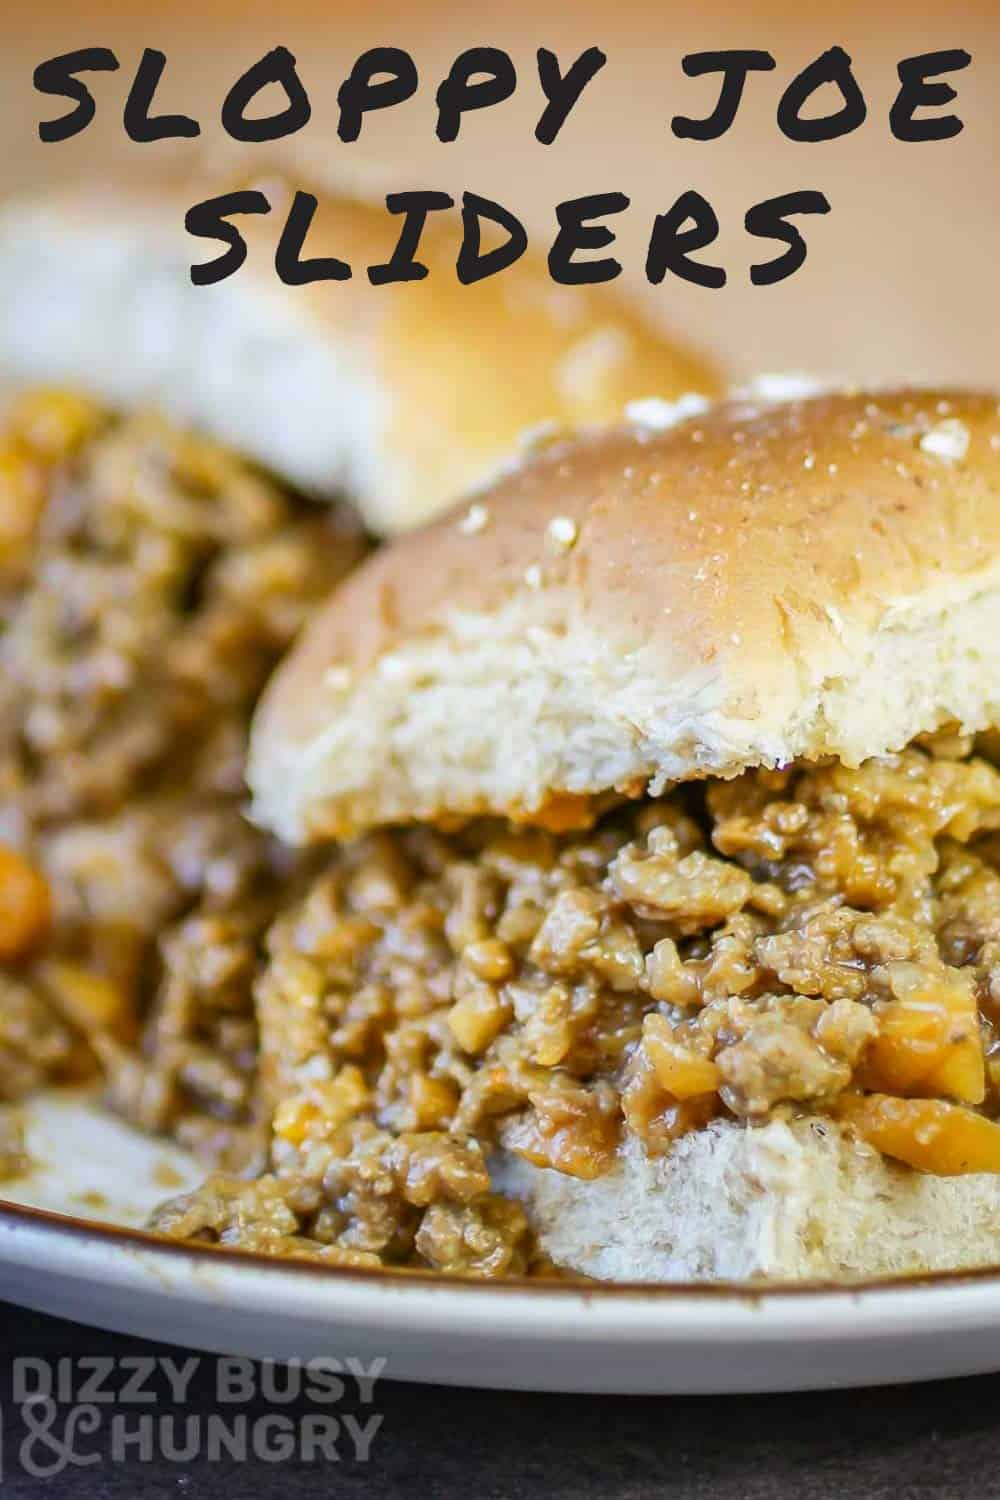 Close up shot of two sloppy joe sliders on a white plate.